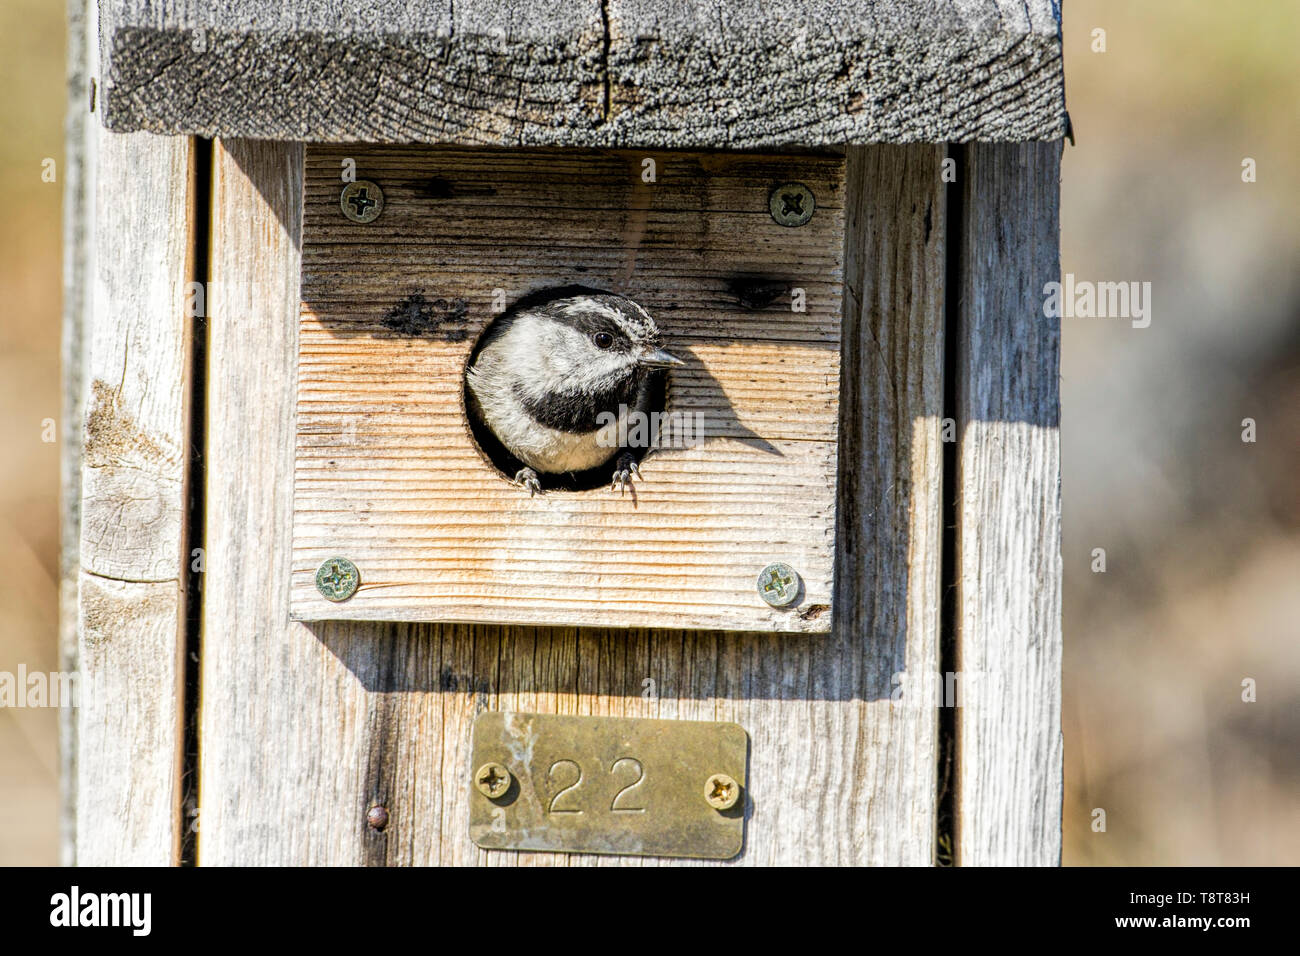 A tiny Mountain Chickadee pops its head out of a bird house at Farragut State Park in north Idaho. - Stock Image